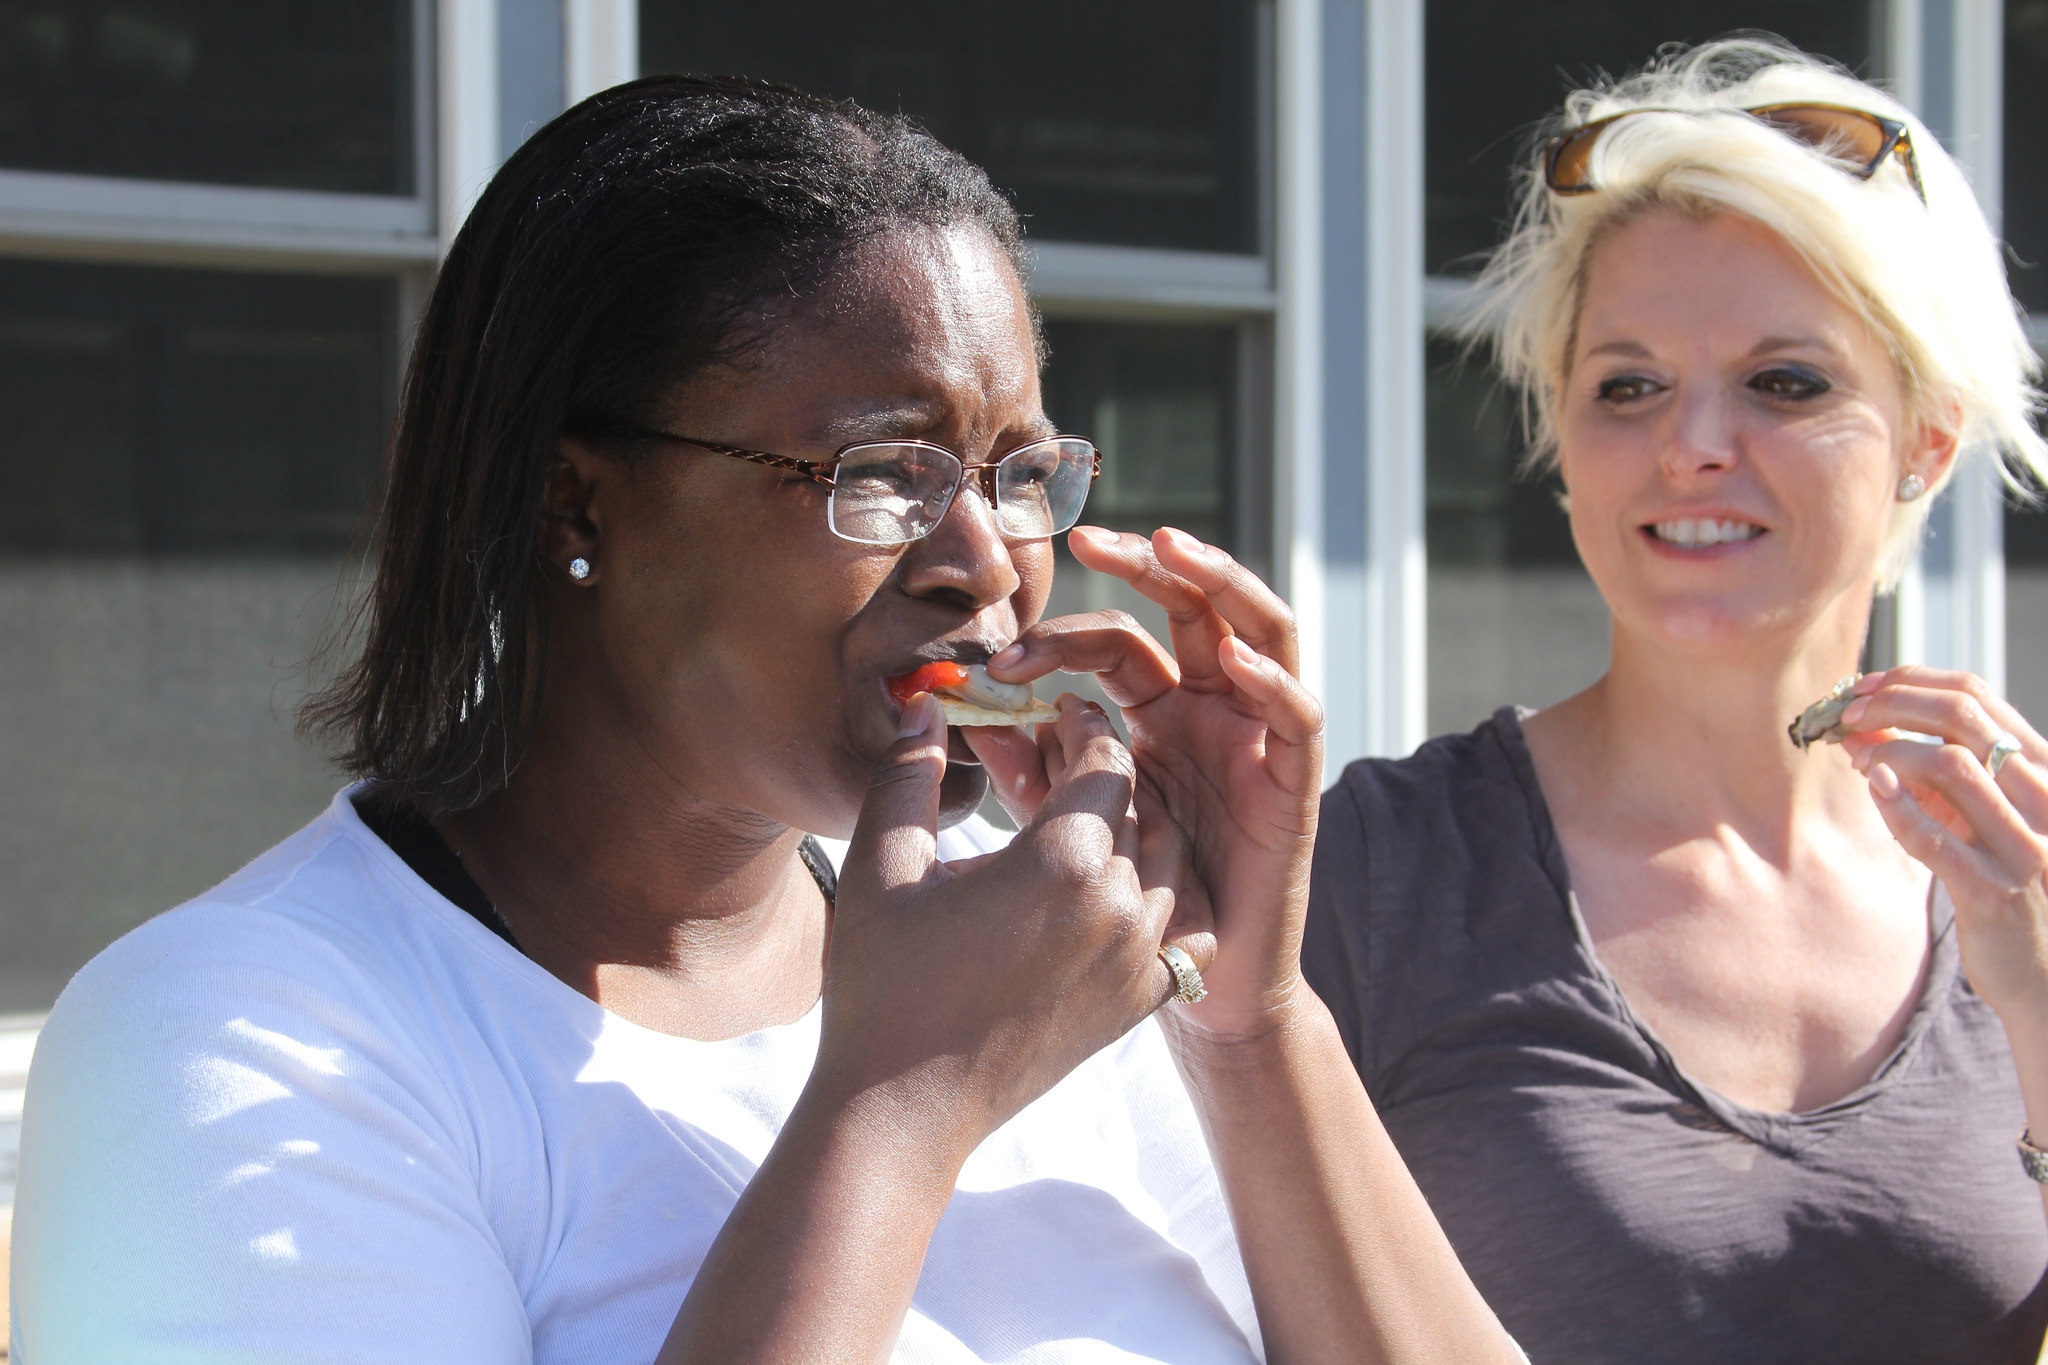 Kisha Faulk tries her first roasted oyster while her coworker Barbara Worley looks on. The two women were among the participants in a recent Ocean to Table workshop designed to increase consumers' and UGA Extension agents' knowledge and awareness of Georgia seafood.